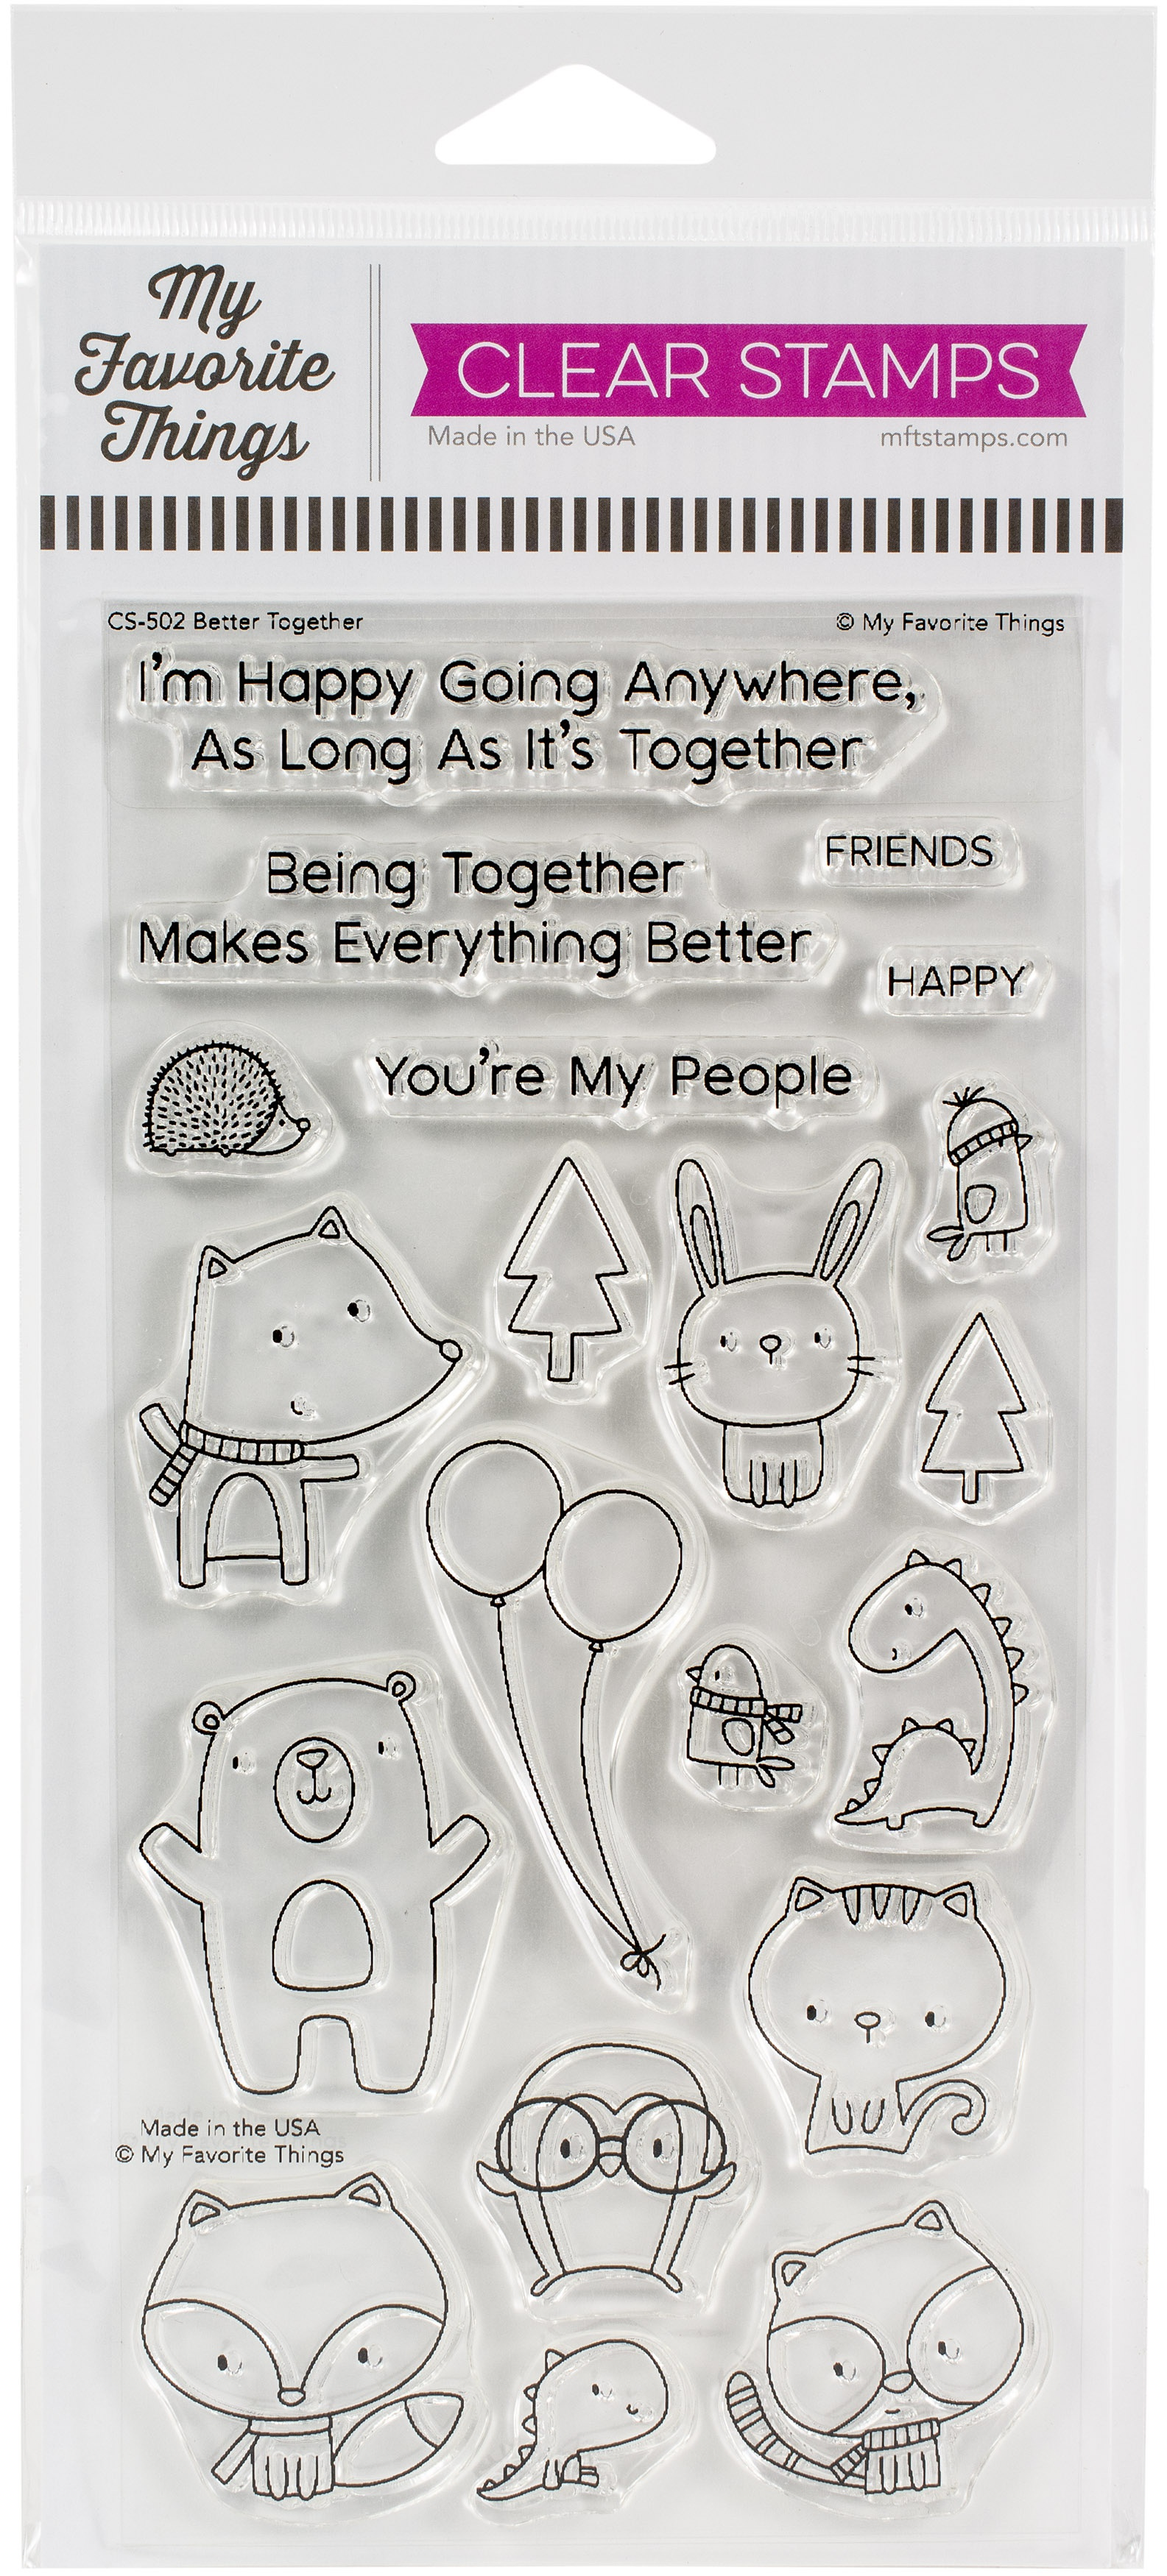 My Favorite Things Clearly Sentimental Stamps 4X8-Better Together